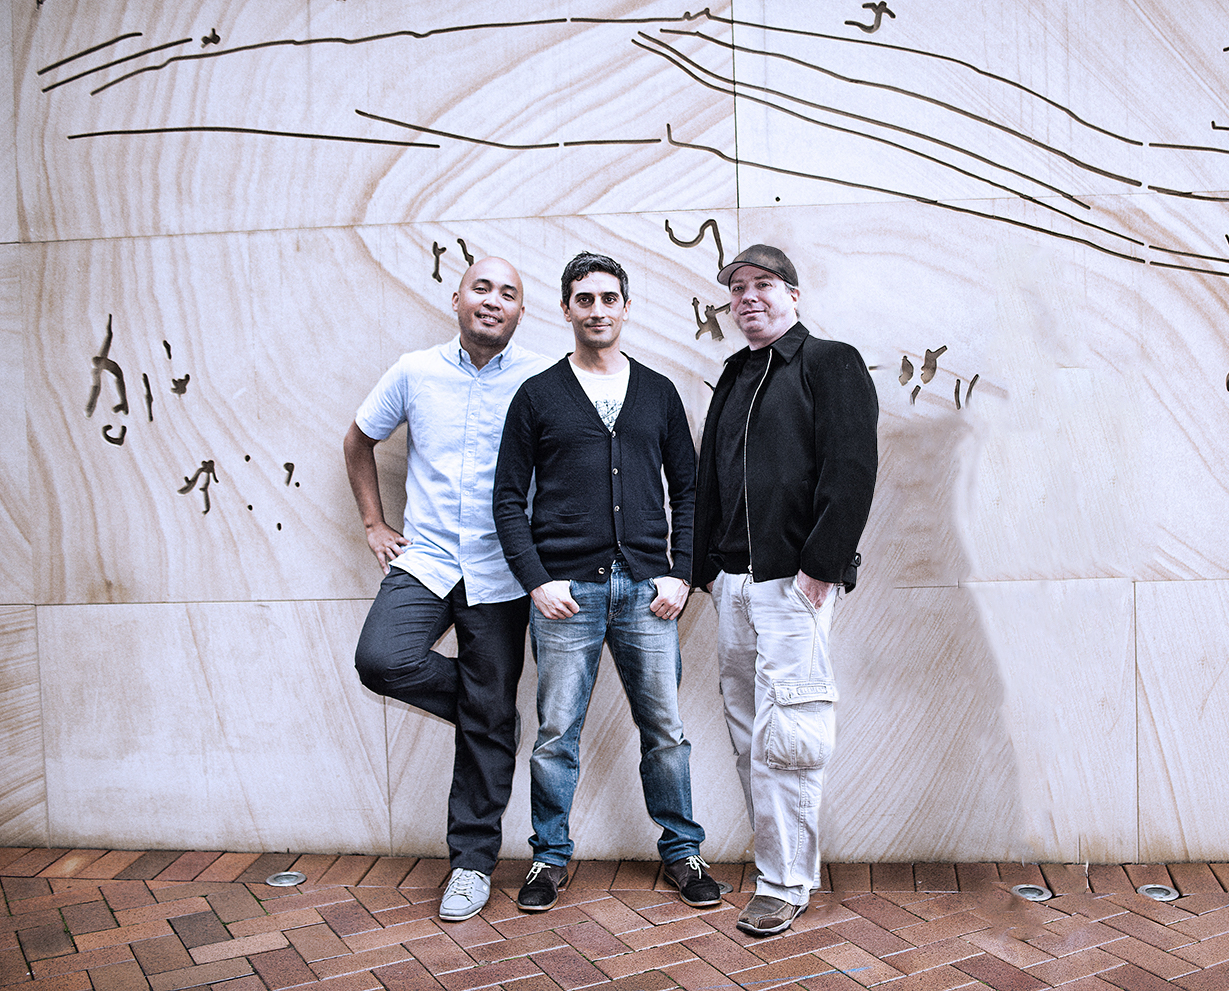 Sydney-based cybersecurity Tide Foundation founders Dominique Valladolid, Michael Loewy and Yuval Hertzogof